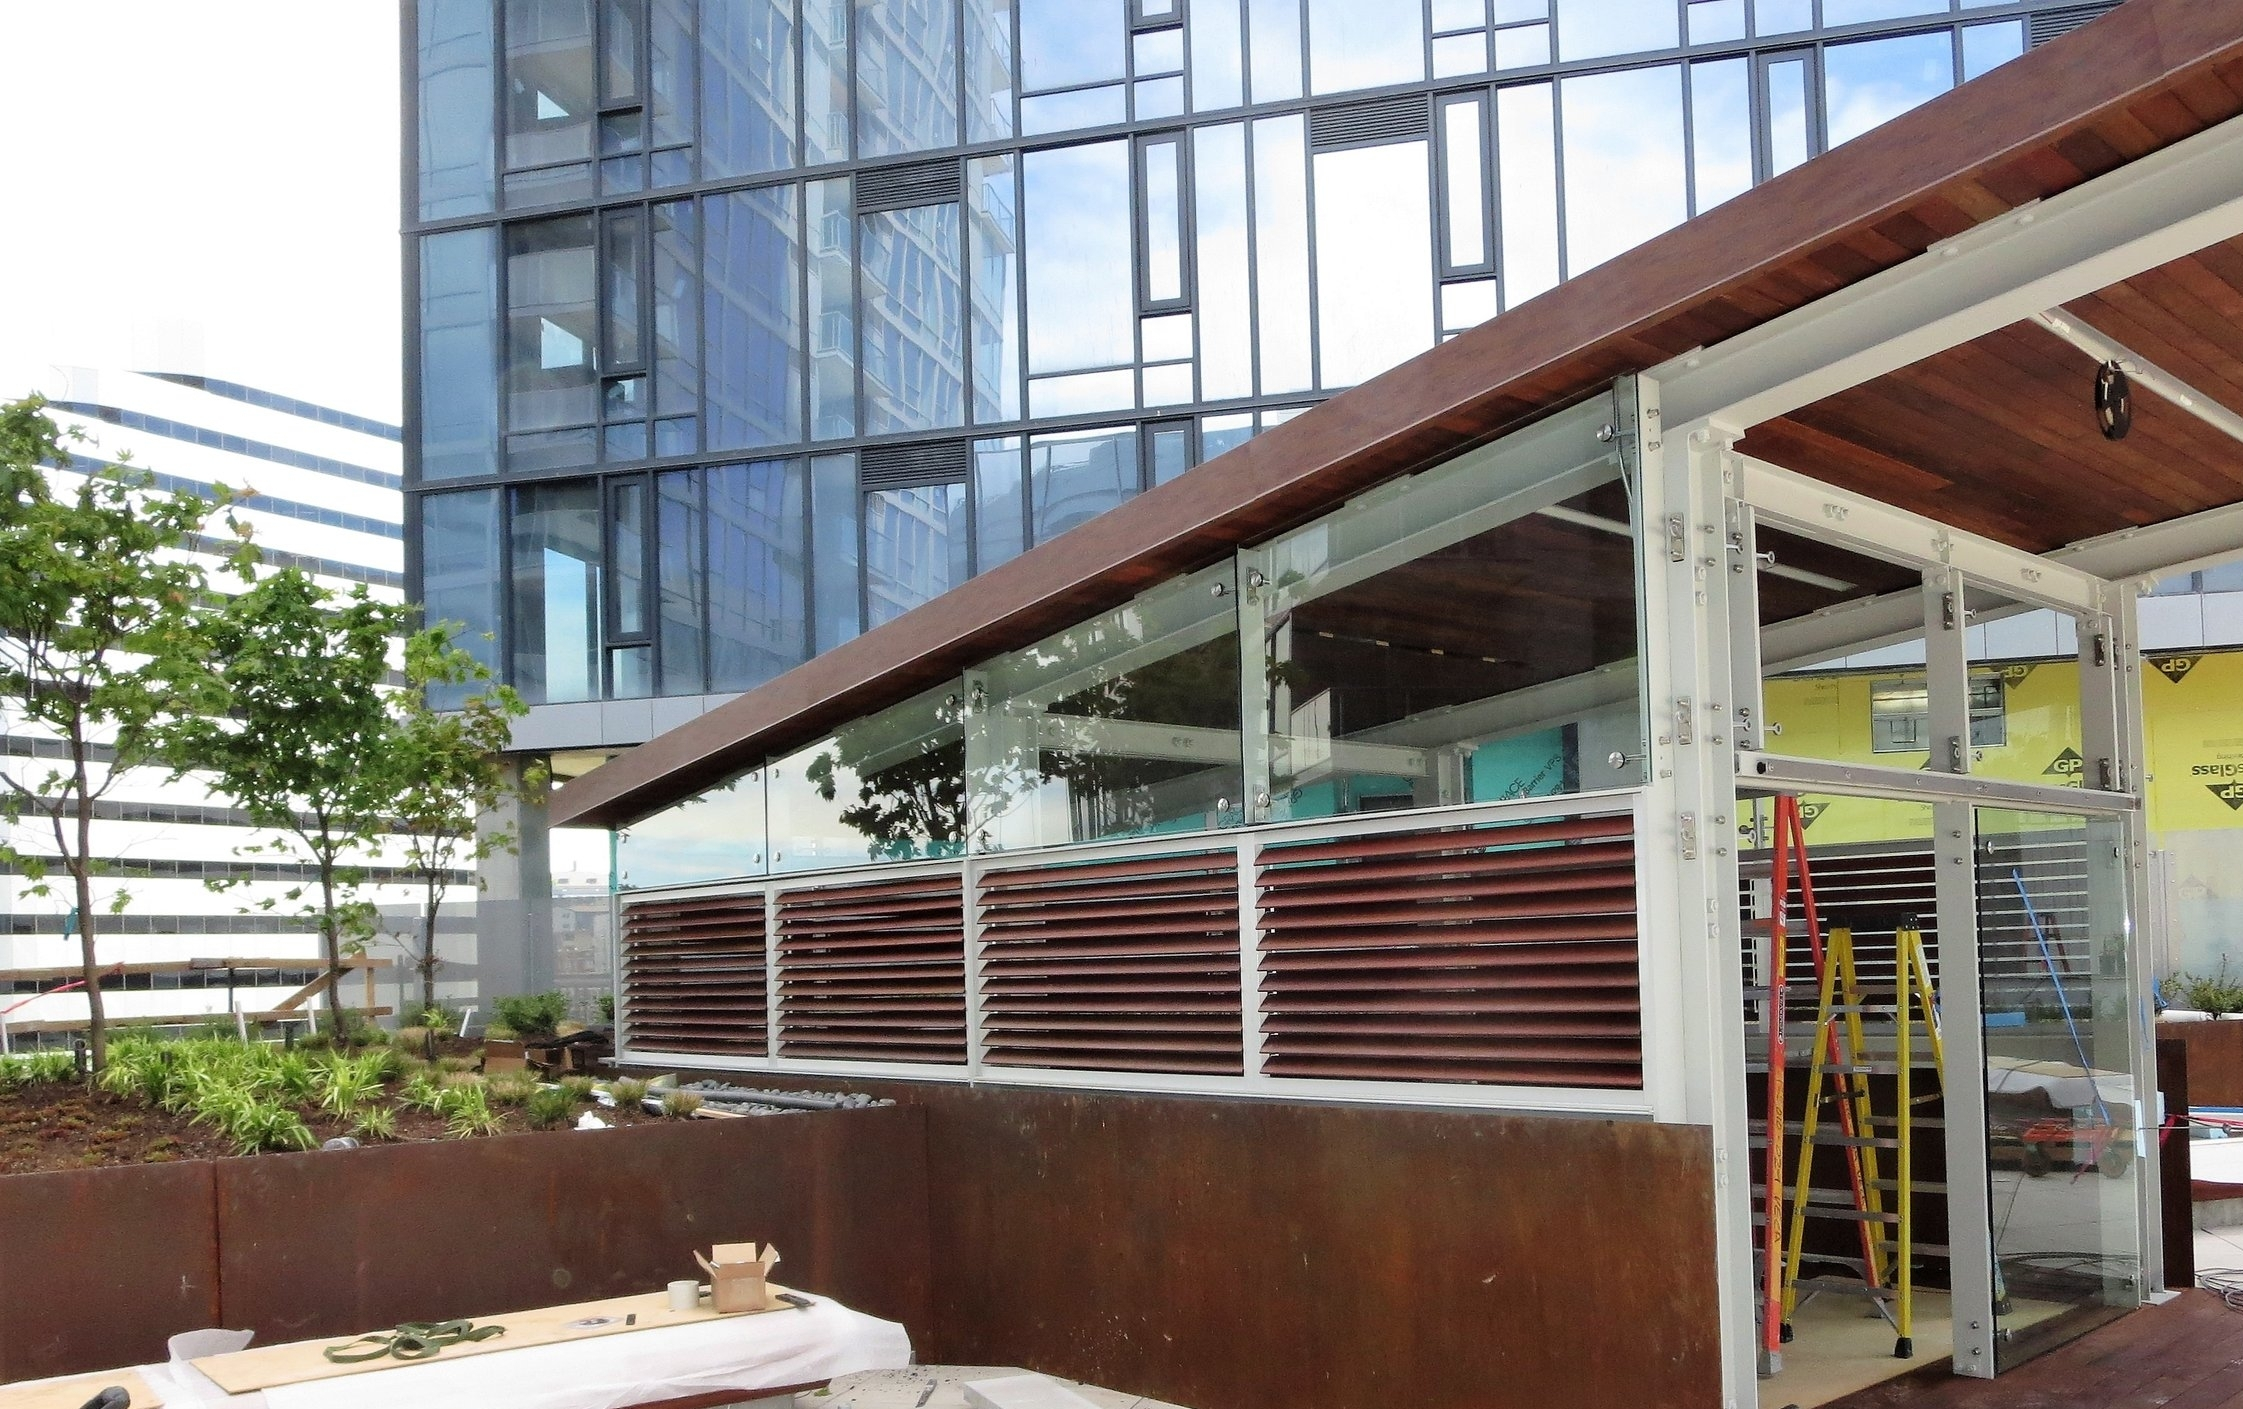 Video - Rooftop Louvered Terrace Project in Seattle, WA